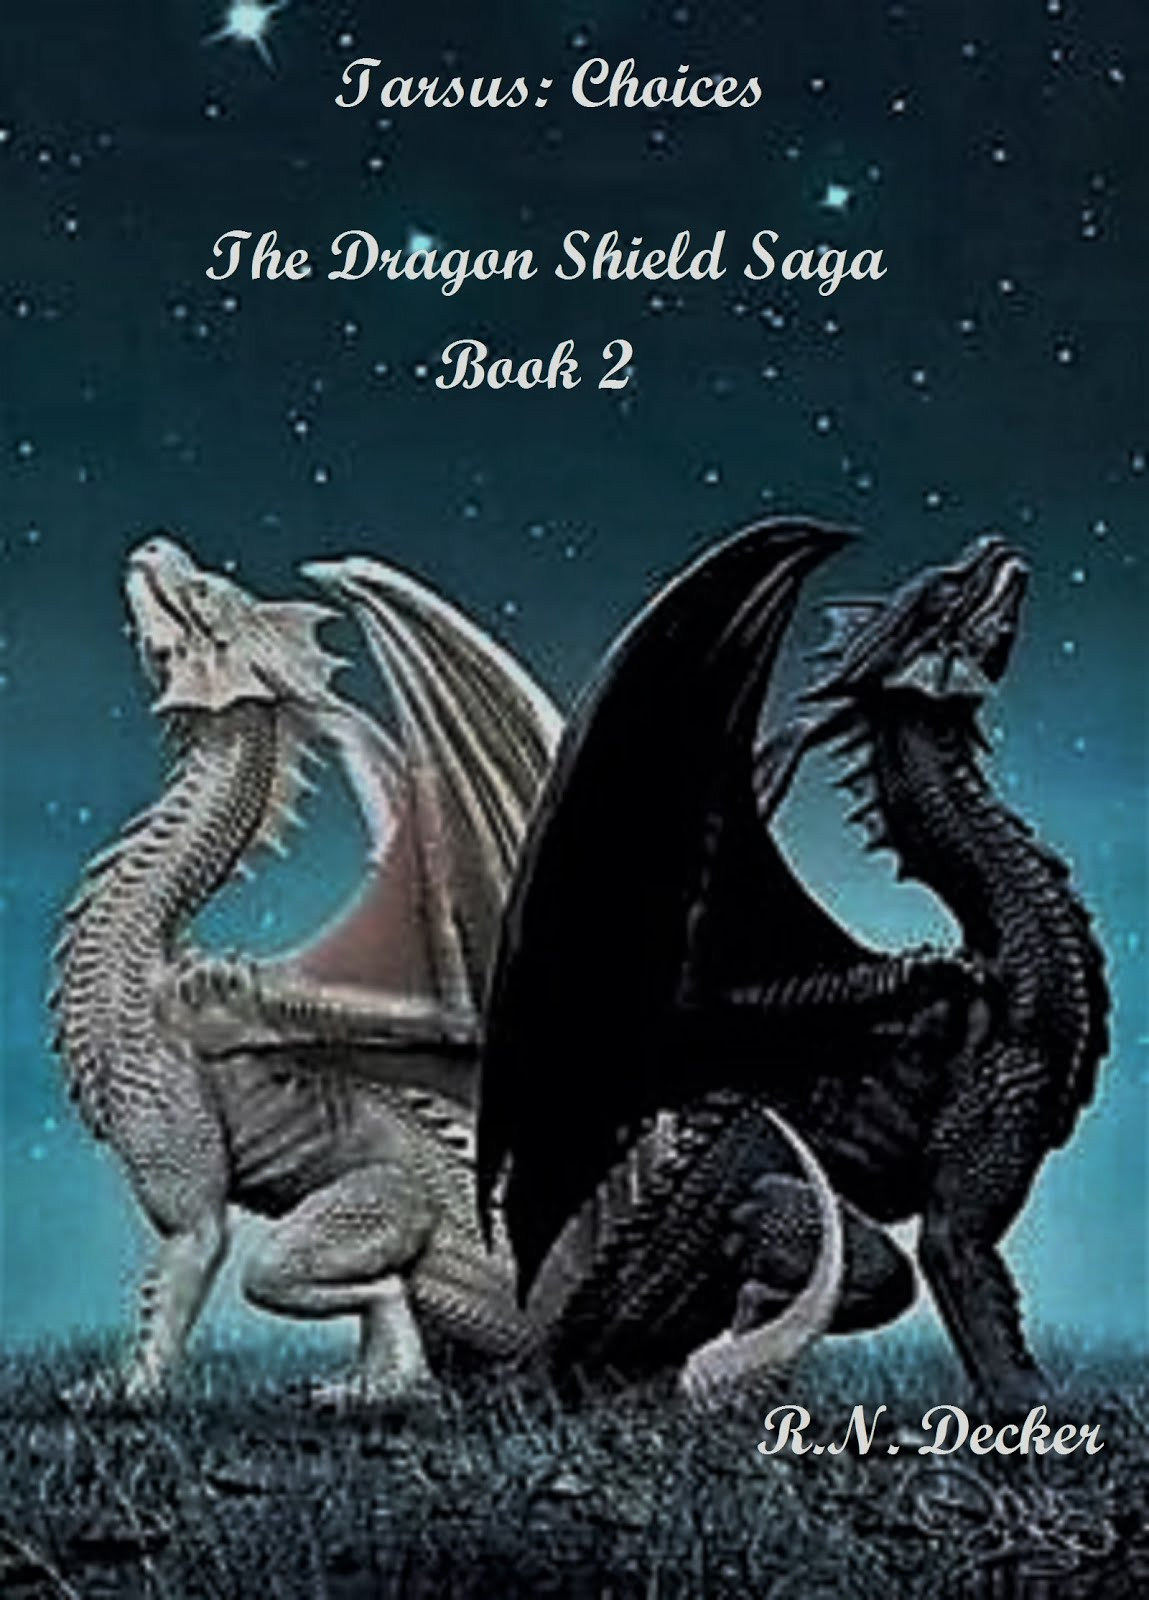 The Dragon Shield Saga Book 2